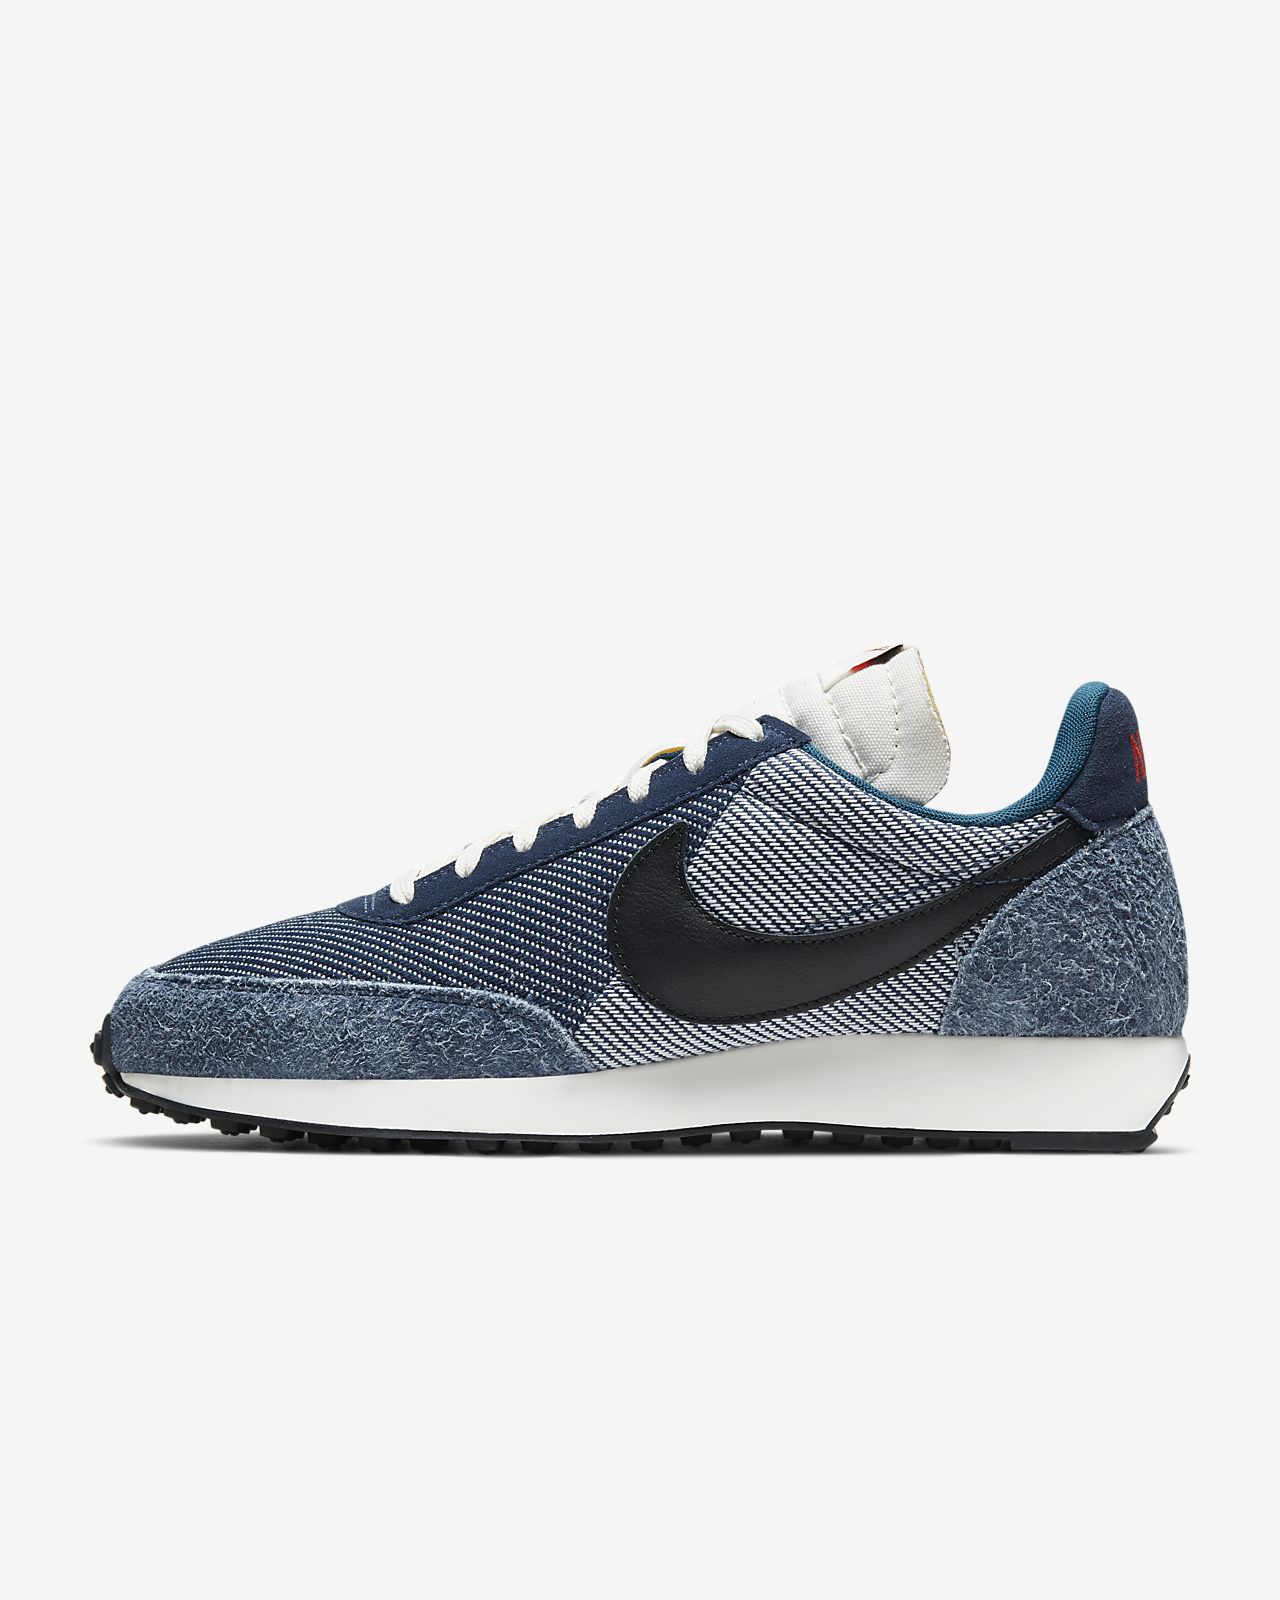 Nike Air Tailwind 79 SE Men's Shoe